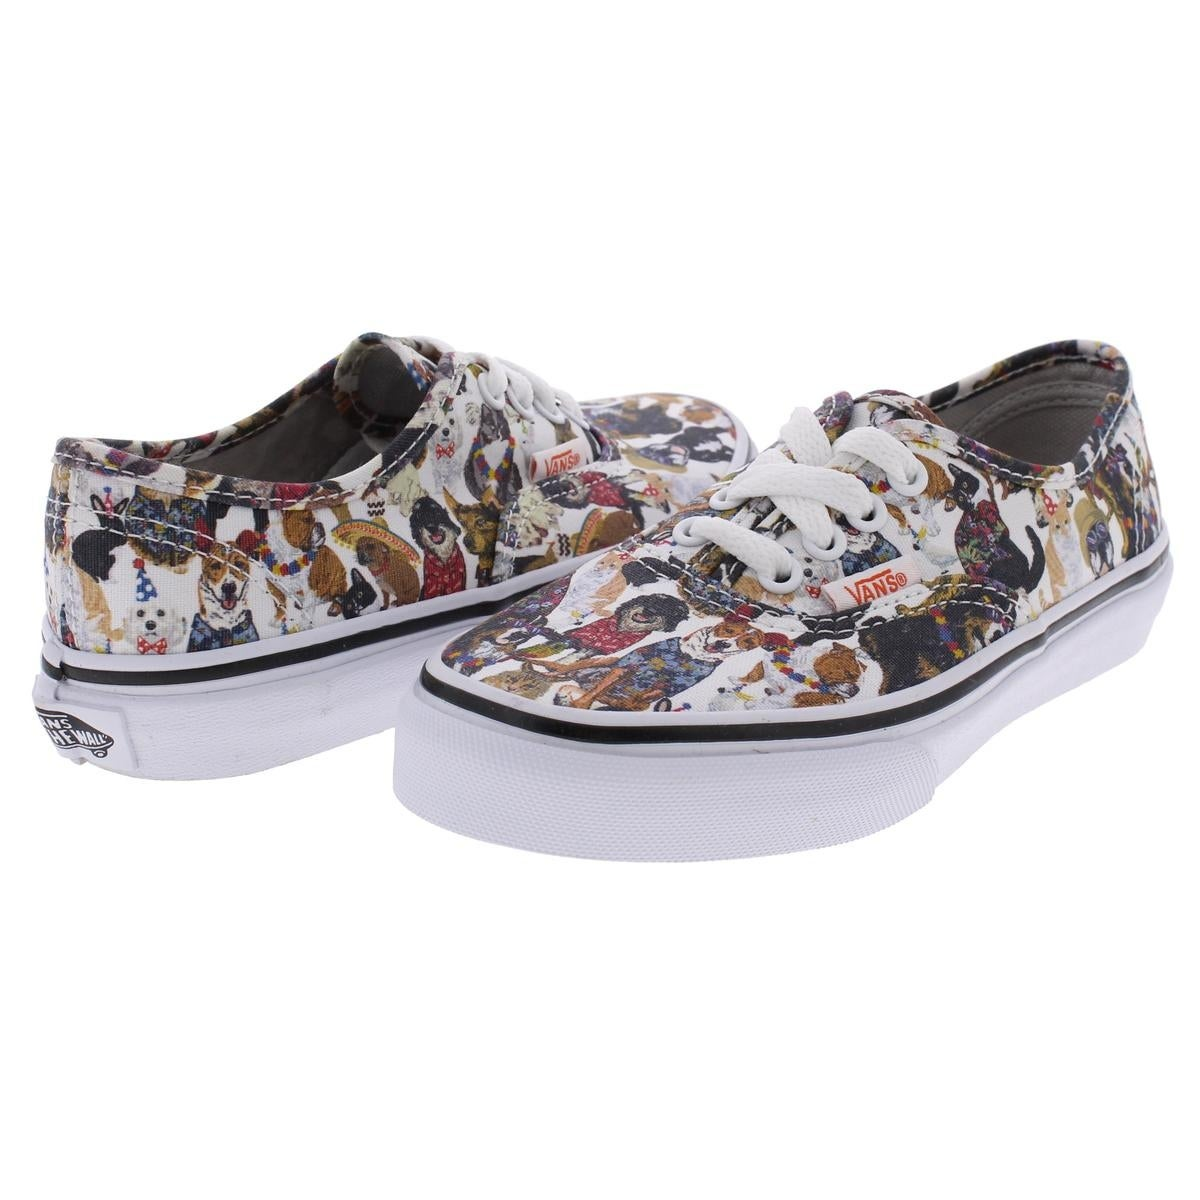 186ab78a8793 Shop Vans Boys ASPCA Skate Shoes Dogs Cats - Ships To Canada - Overstock -  20546025